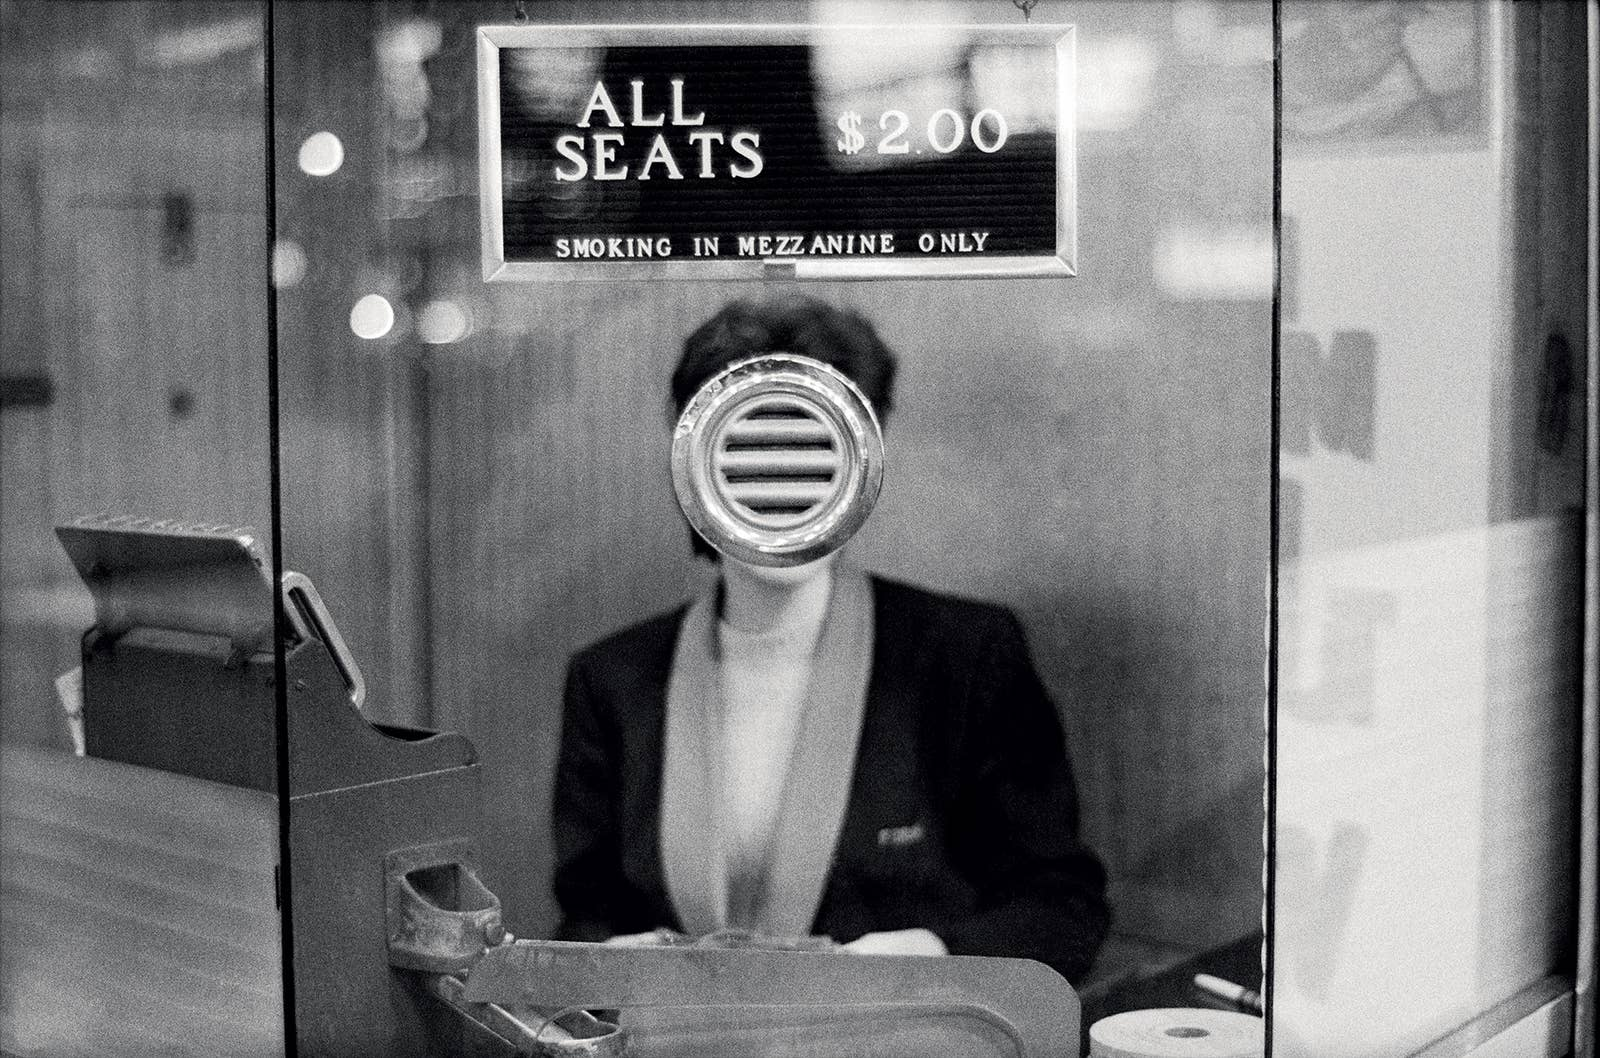 A woman's face is obscured as she sits in the ticket booth at a movie theater